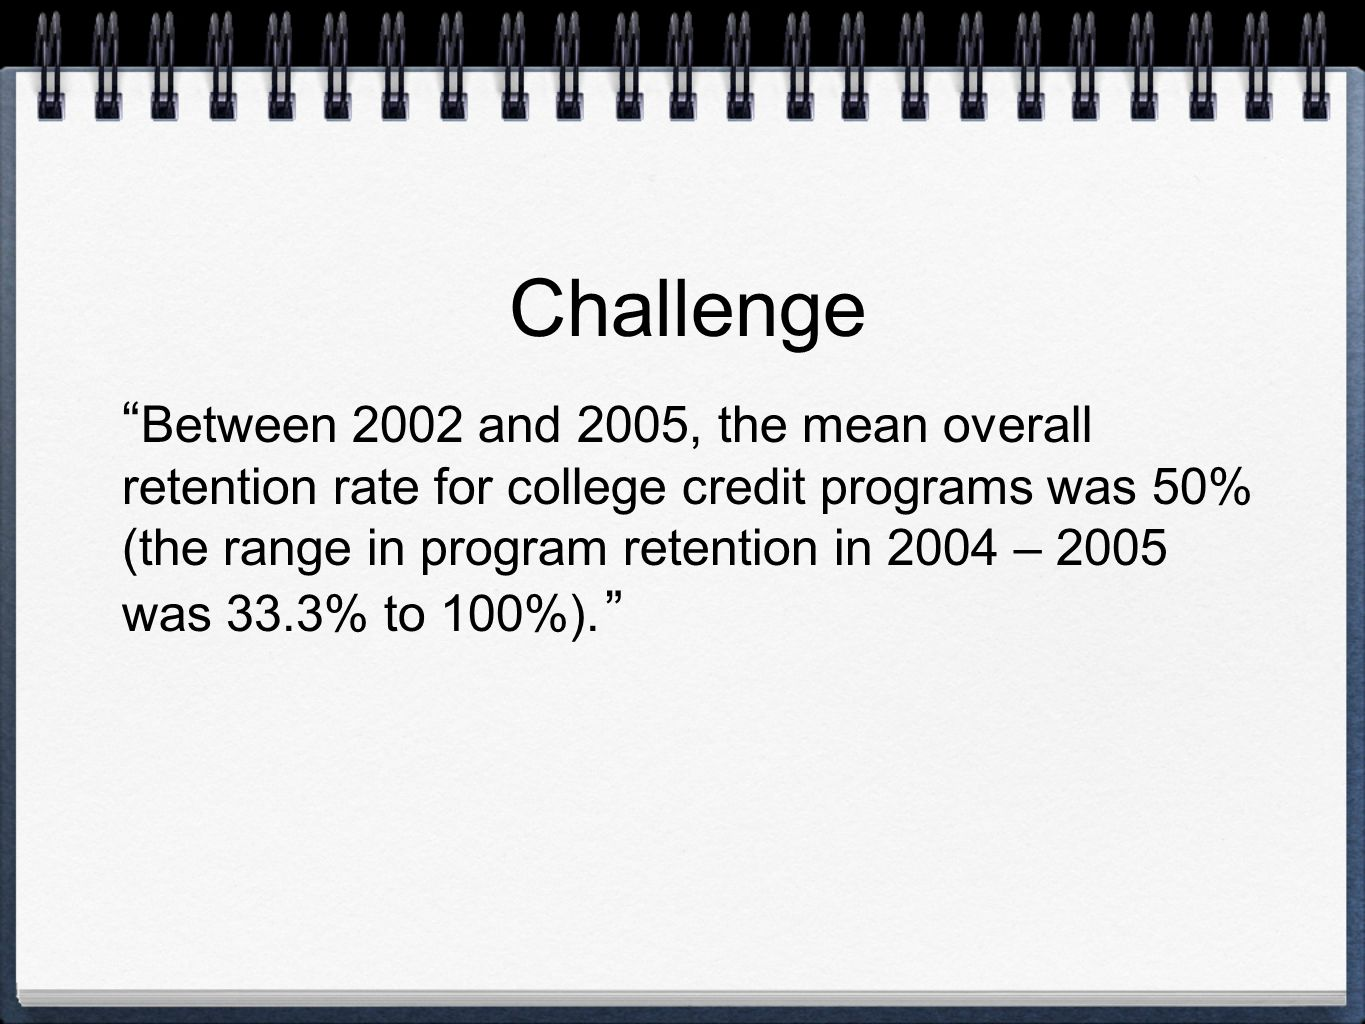 Challenge Between 2002 and 2005, the mean overall retention rate for college credit programs was 50% (the range in program retention in 2004 – 2005 wa